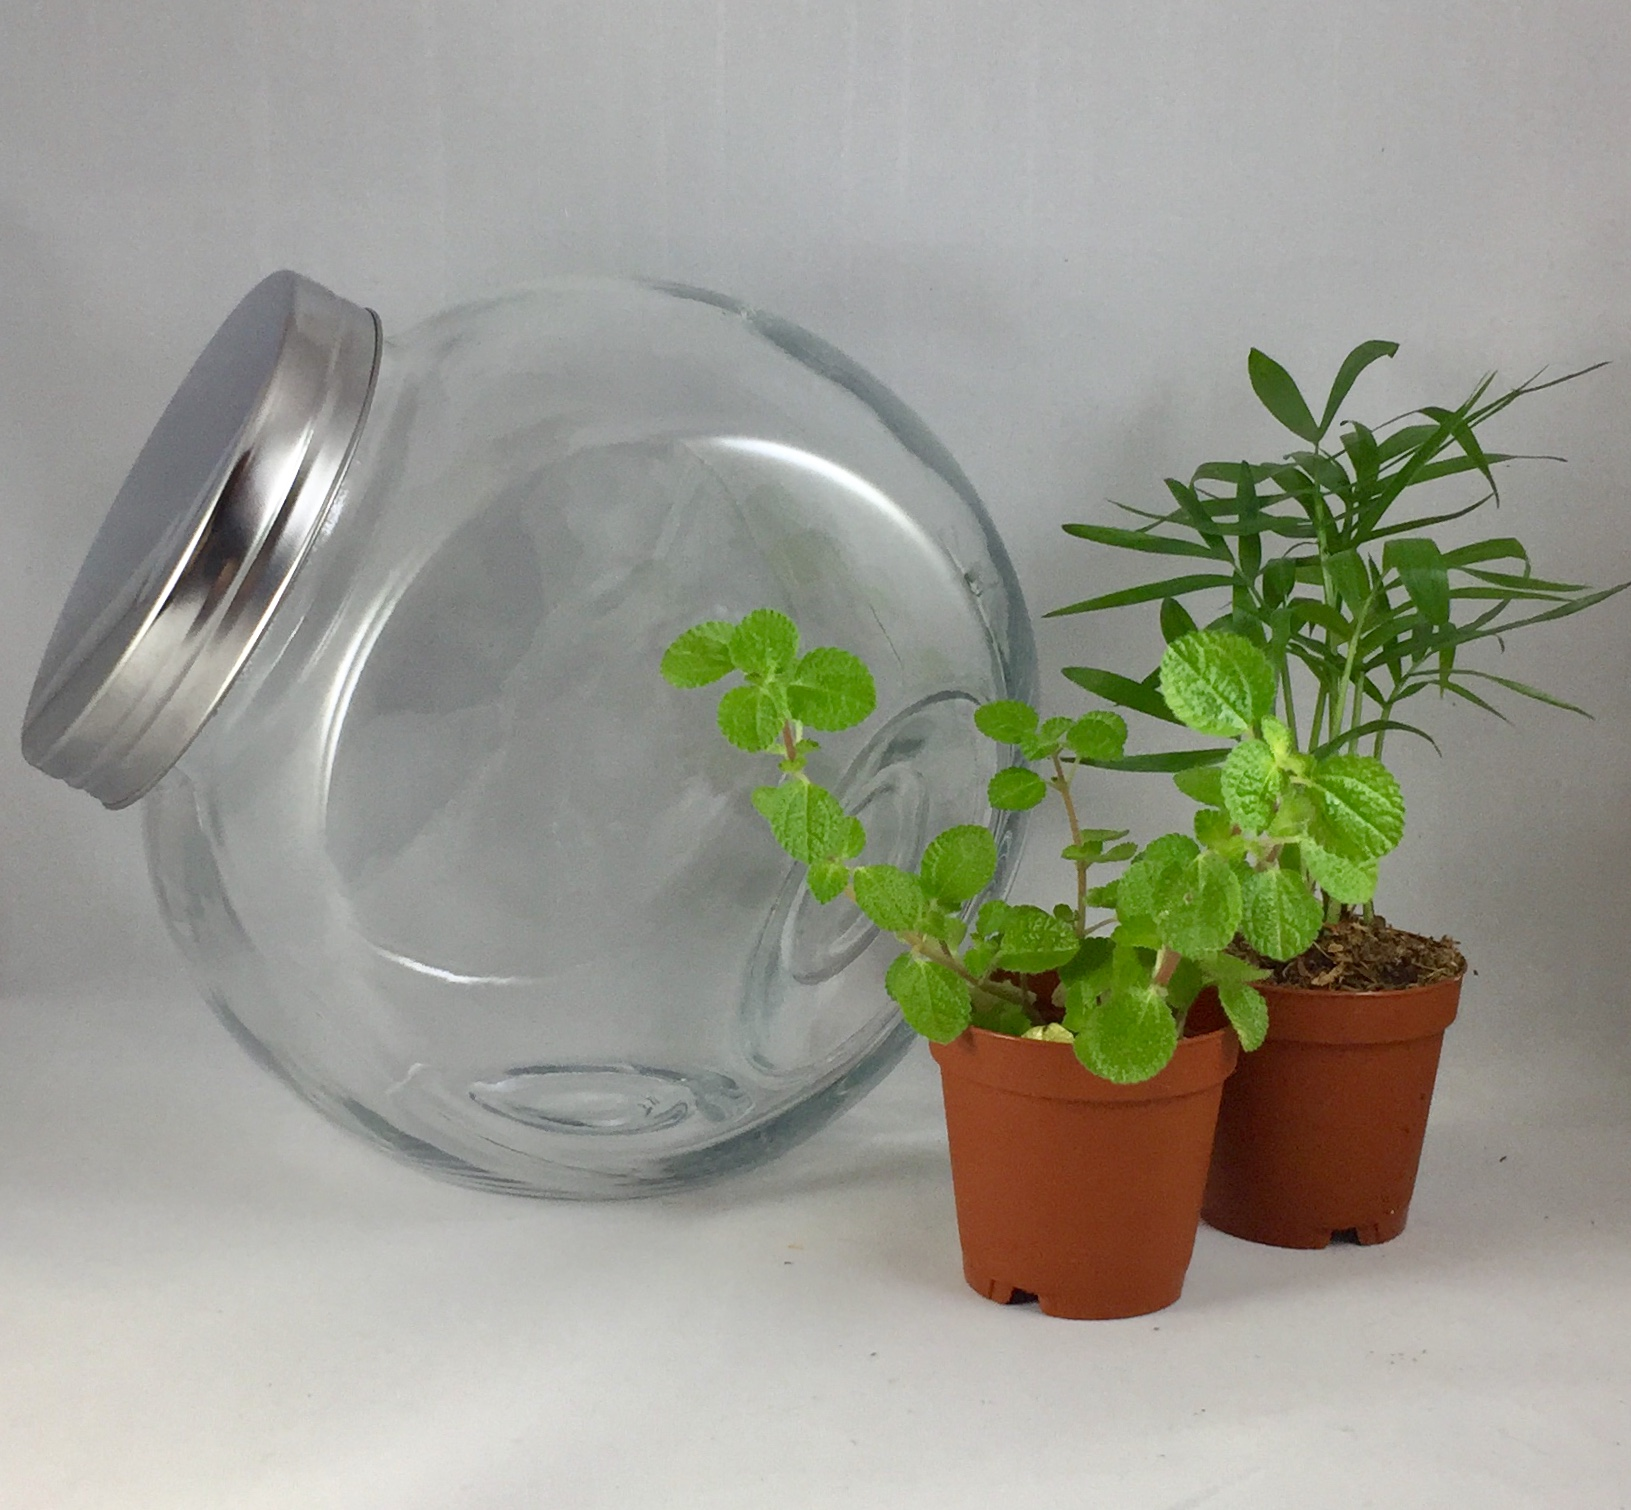 Medium Tilted Terrarium - $30 includes: 7 1/2 inch round jar, two plants, base sands, dirt, decorations and tote bag.